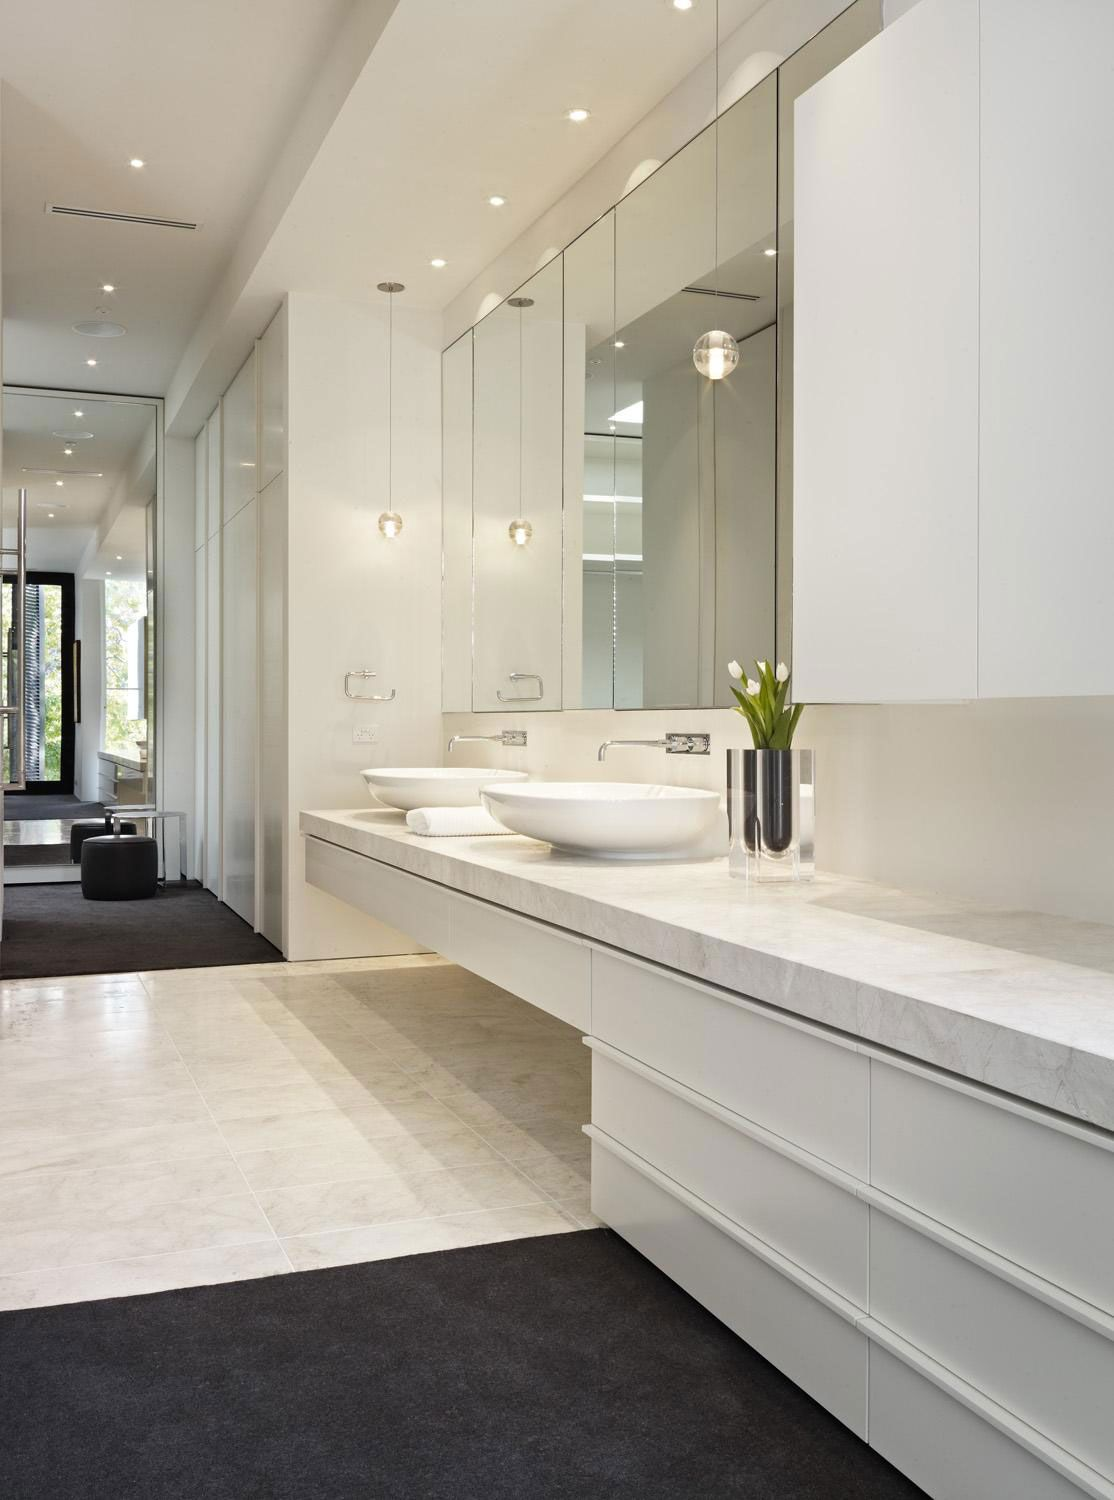 Large Bathroom Wall Mirror Verdant Avenue Home by Robert Mills Architects (10) Brushed Nickel Bathroom  Mirror, Large